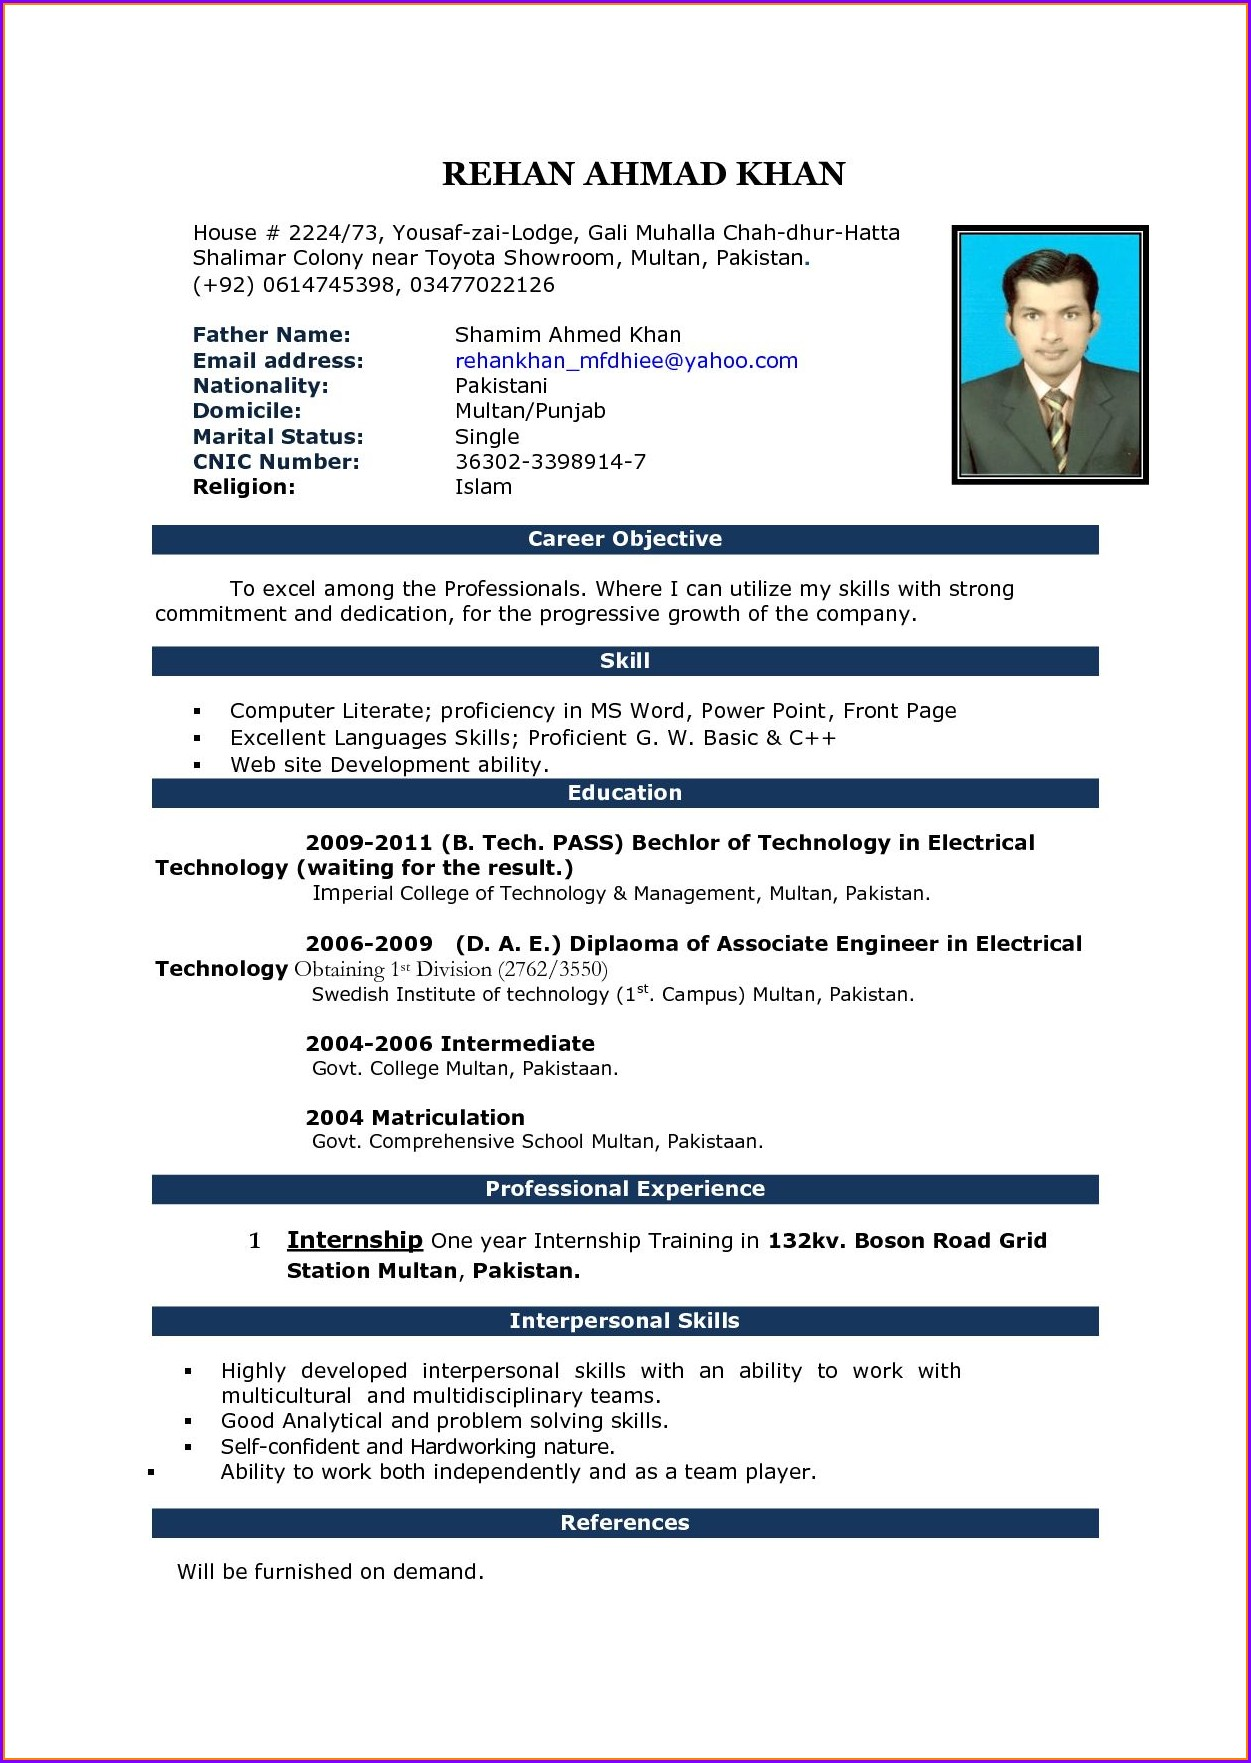 Resume Templates Microsoft Word Free Download